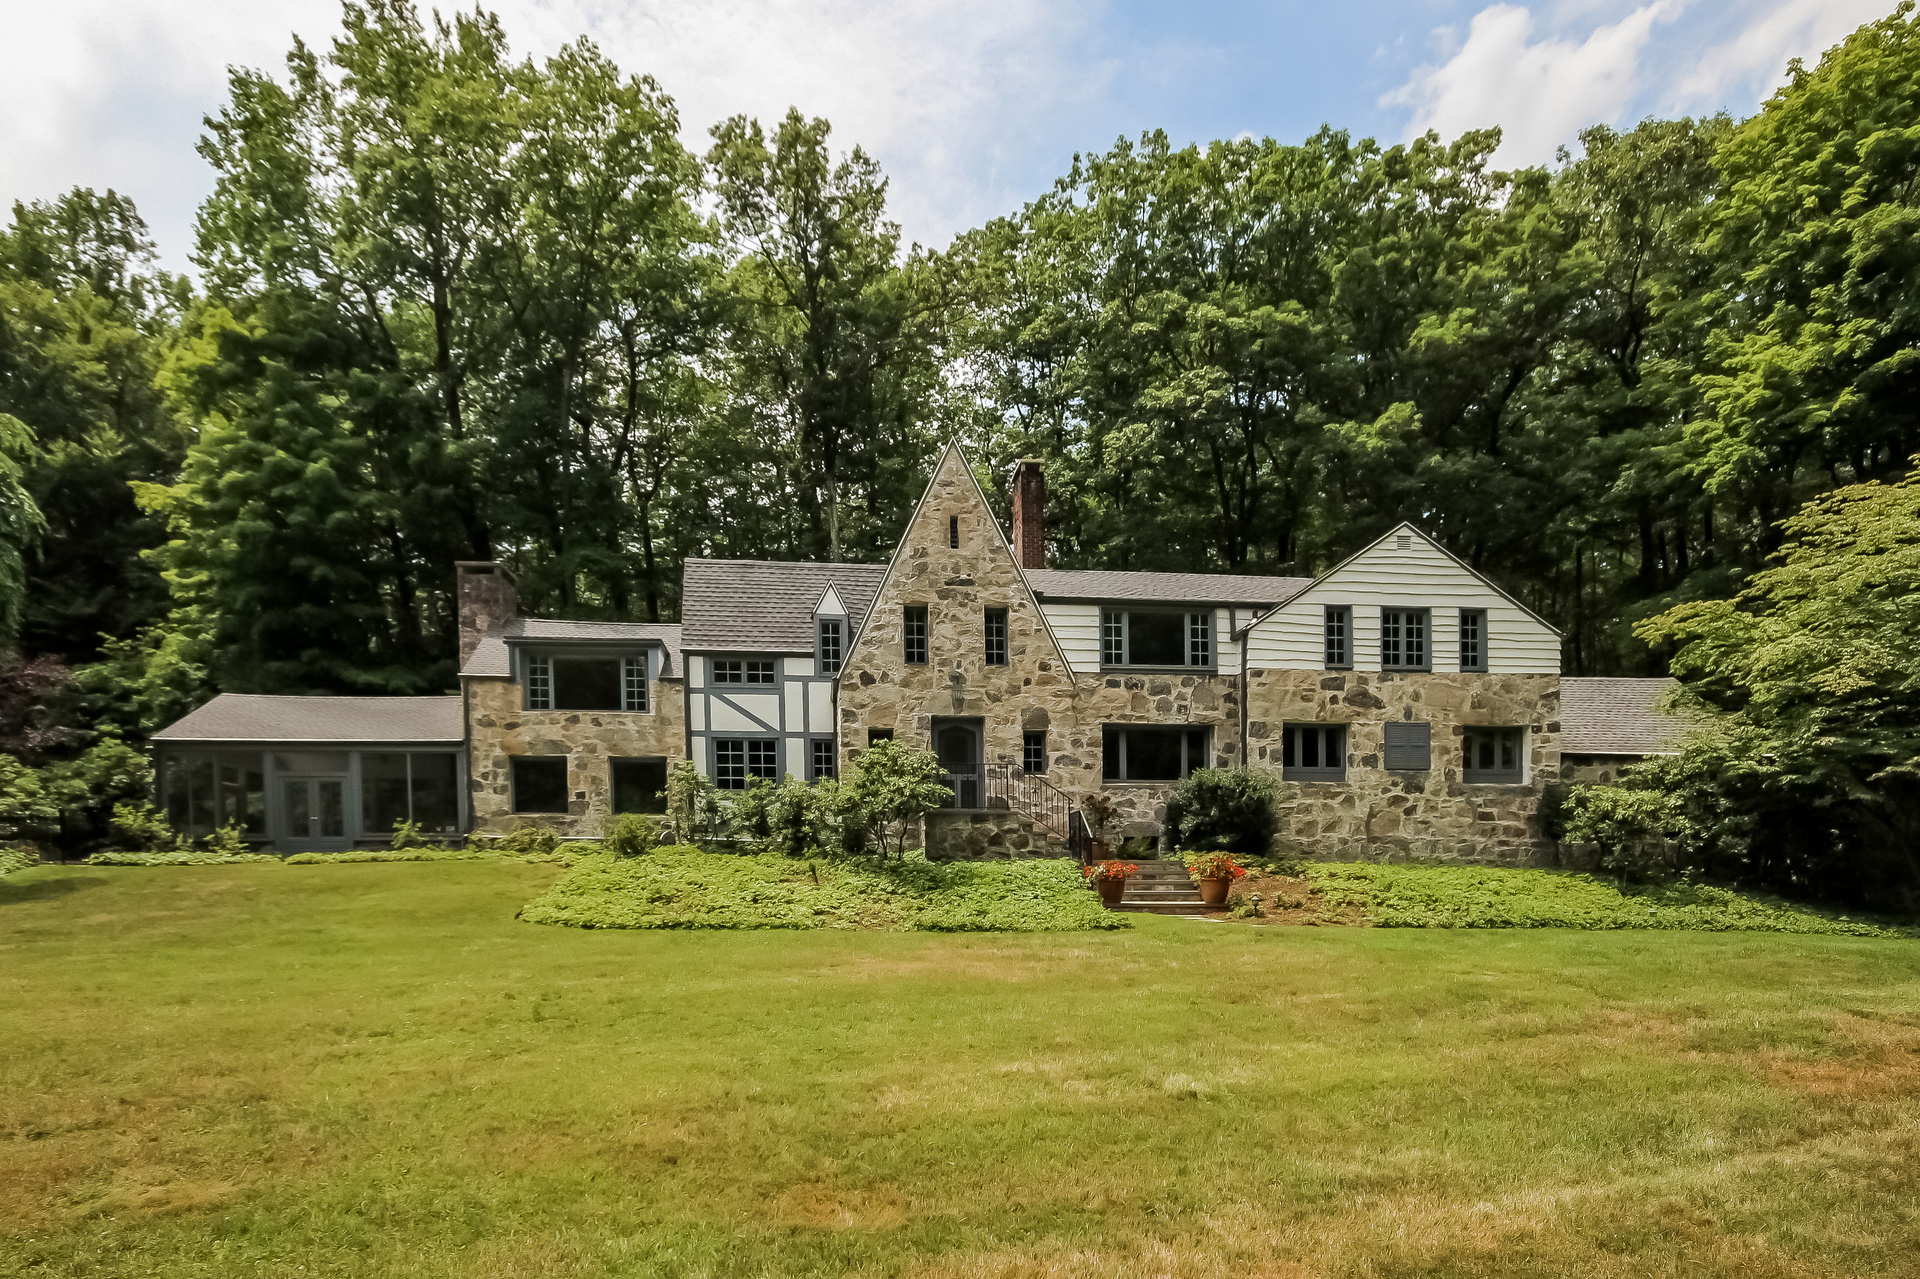 Casa Unifamiliar por un Venta en North Stamford Tudor 133 Laurel Road Stamford, Connecticut, 06903 Estados Unidos